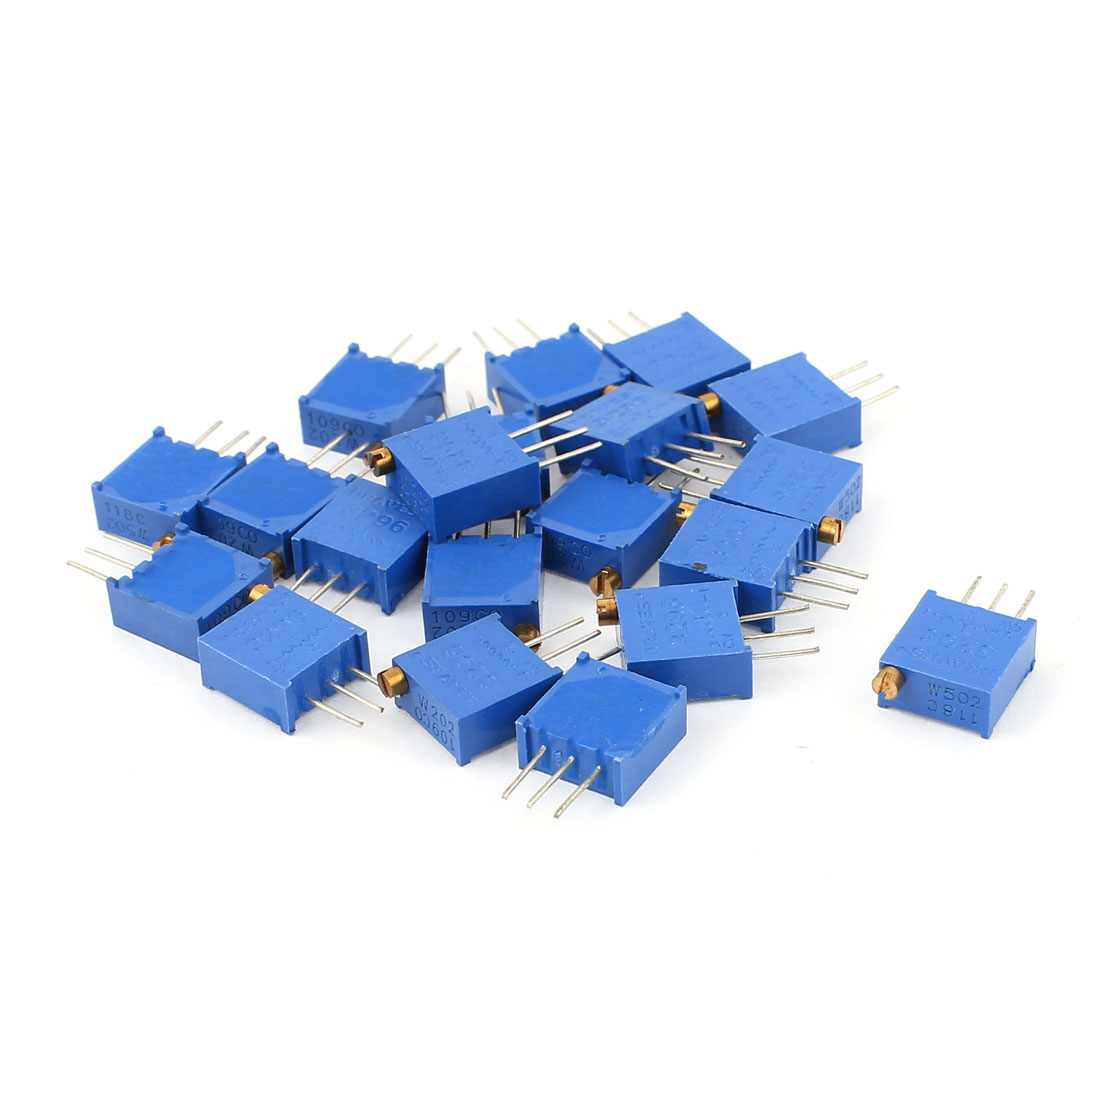 20Pcs 3296W-202 3296W-502 Resistor Trim Pot Potentiometer Trimmer